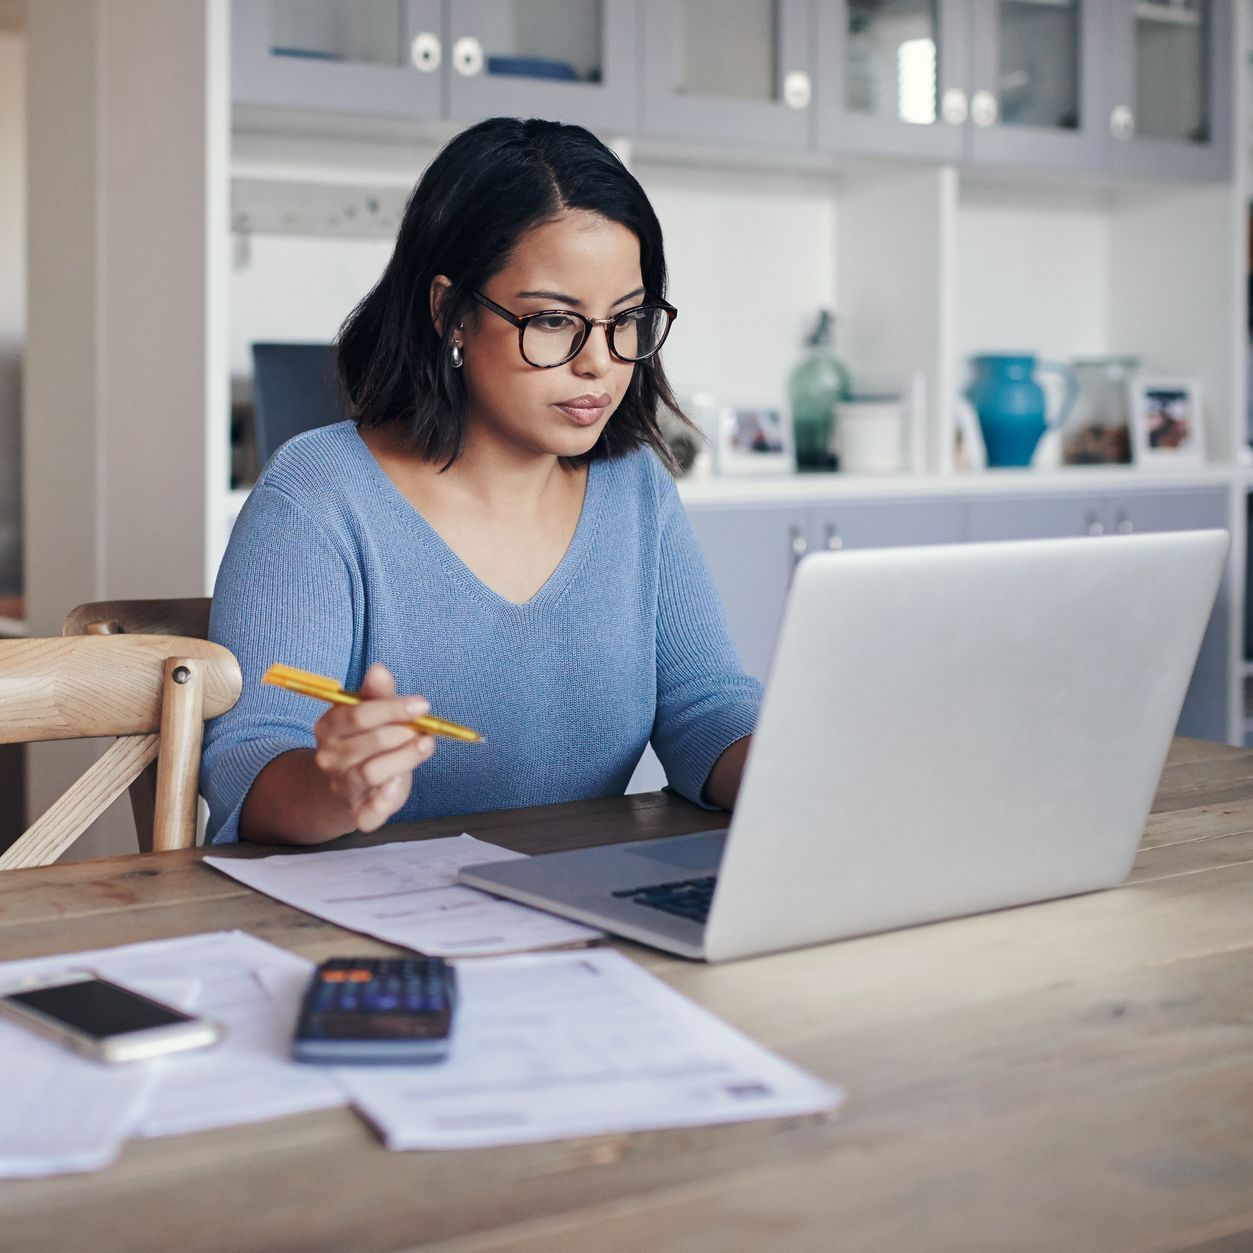 8 Ways to Grow Your Bank Account Without Doing Much Work